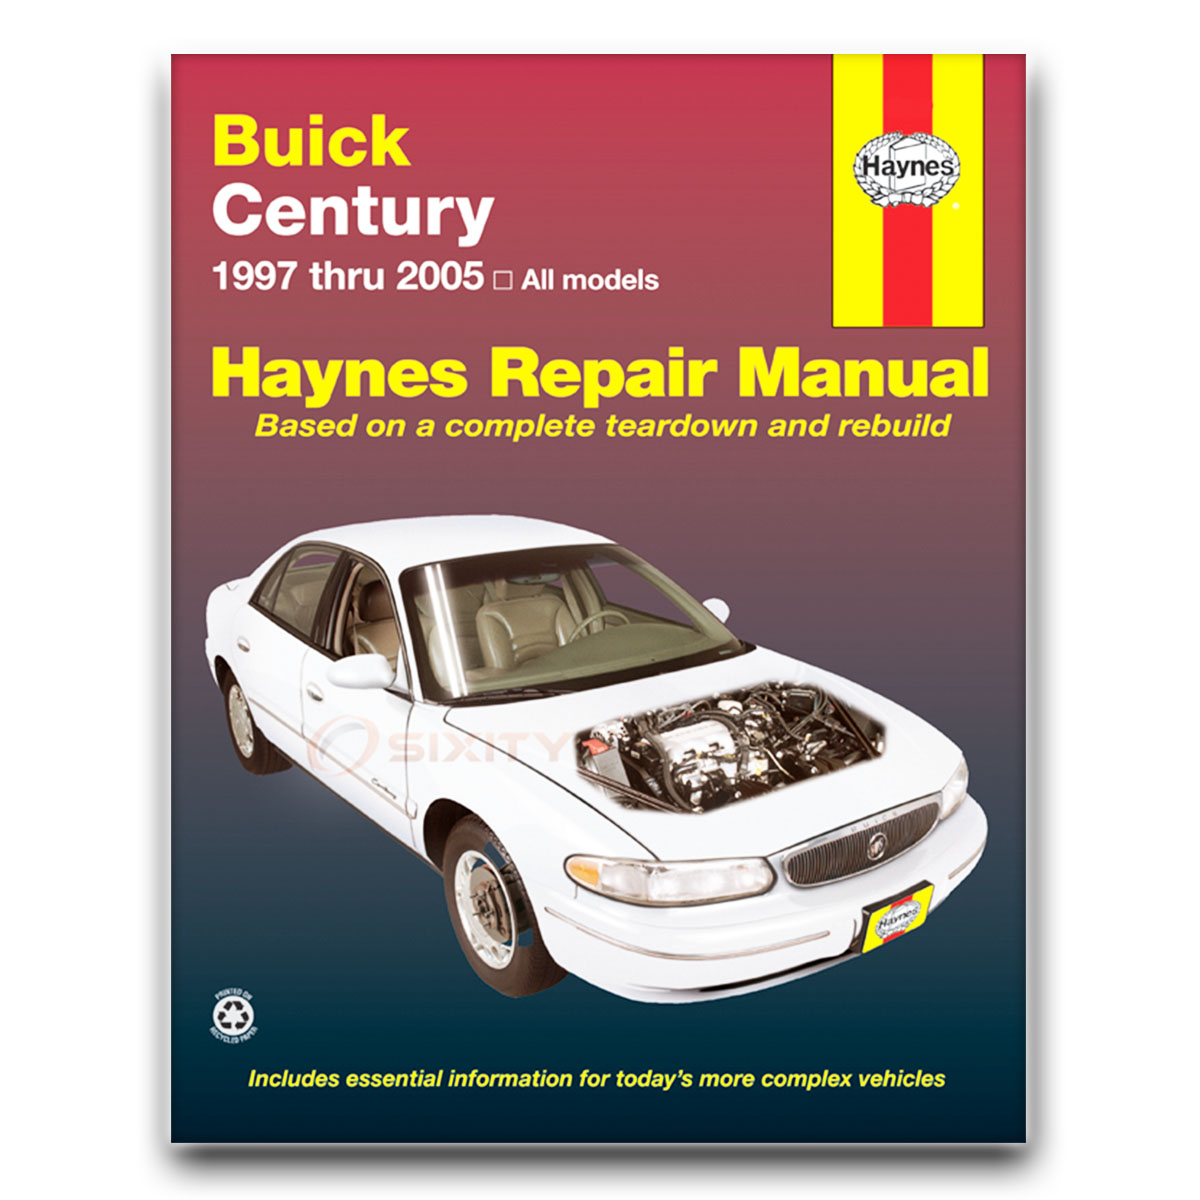 Haynes Repair Manual For Buick Century Custom Limited Special 2002 Wiring Schematic Edition Shop Fd